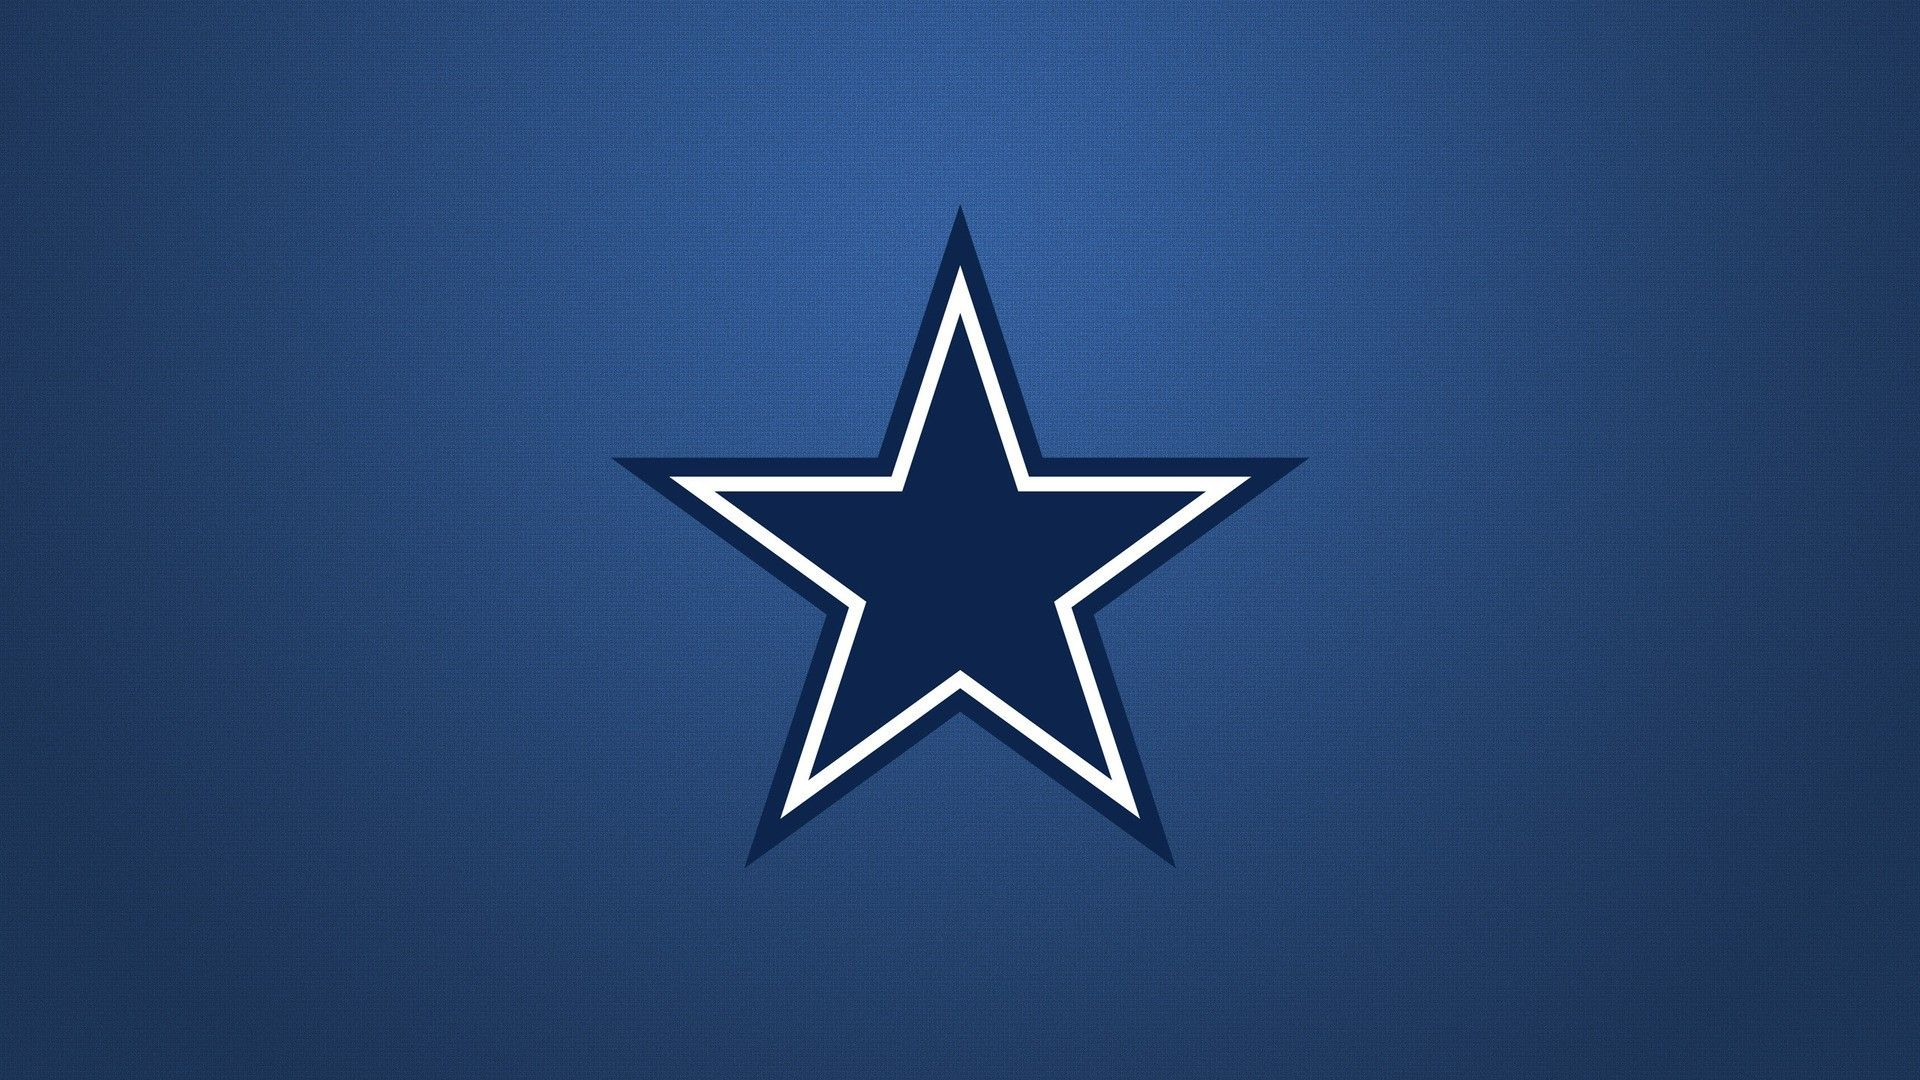 Dallas Cowboys Logo Dallas cowboys wallpaper, Dallas